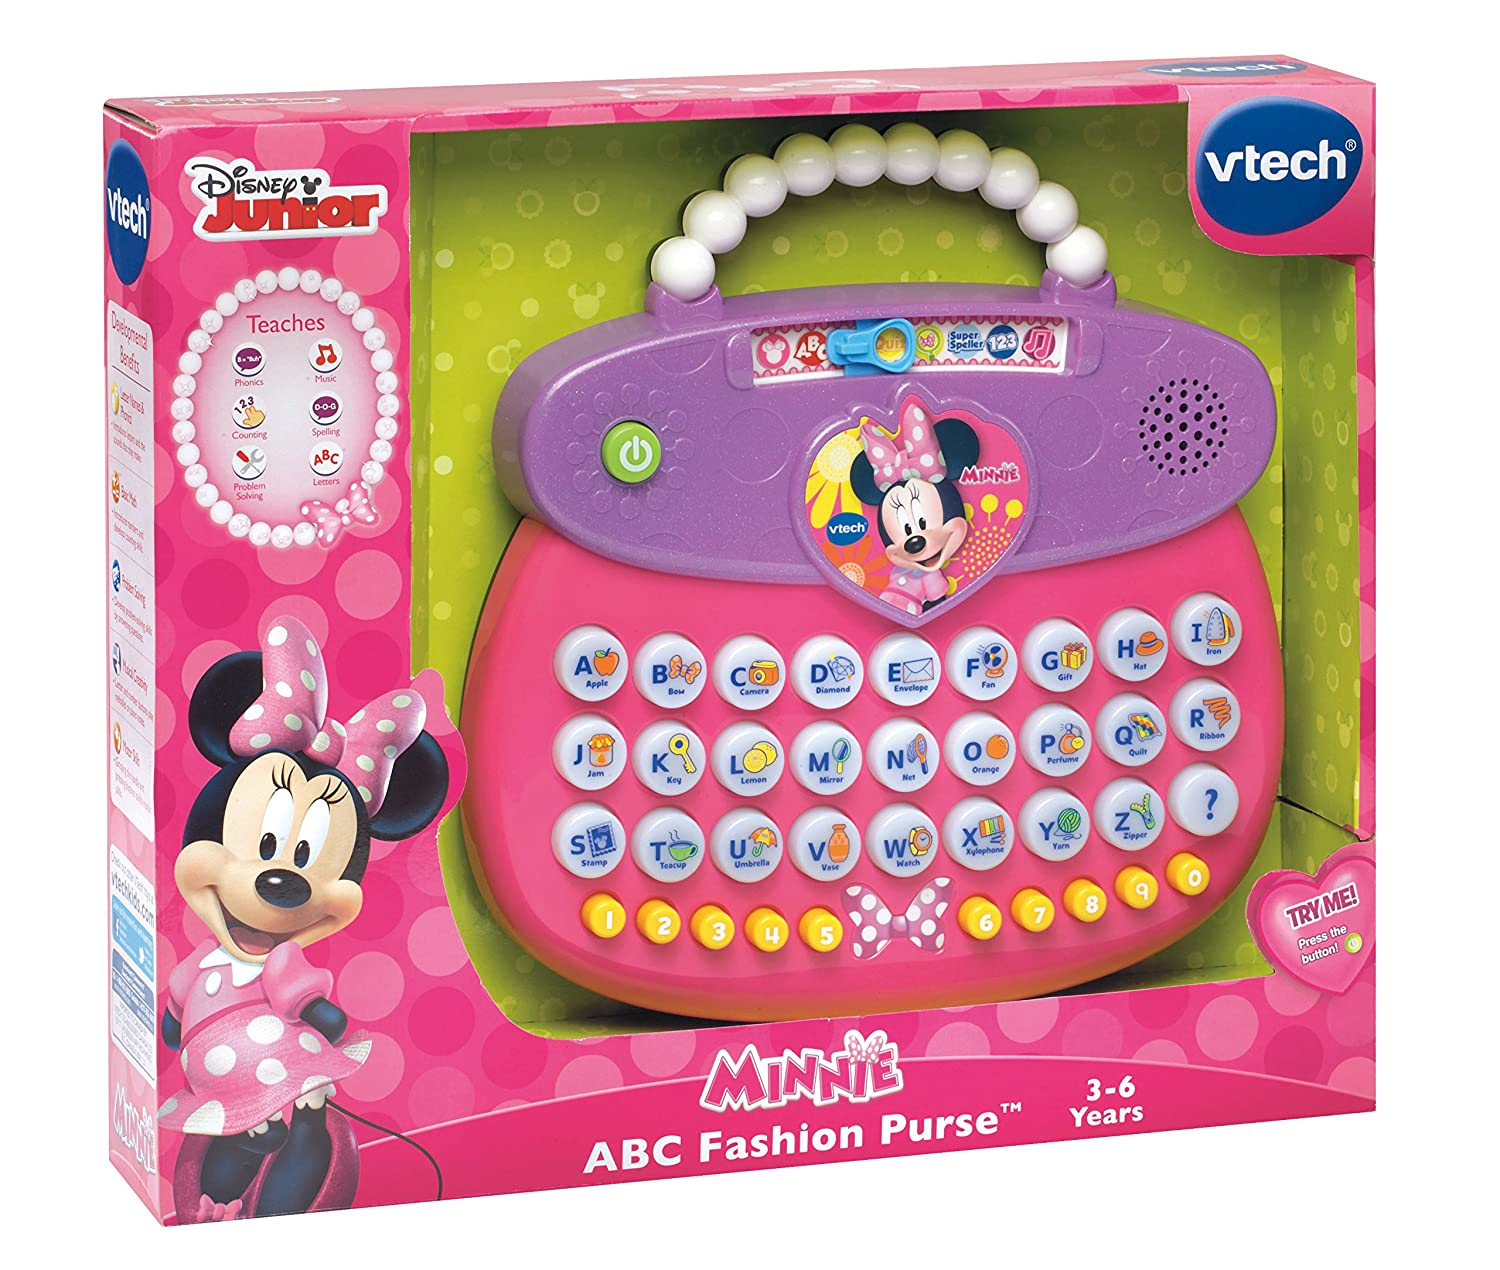 stunning New Minnie Mouse Toys Part - 5: Amazon.com